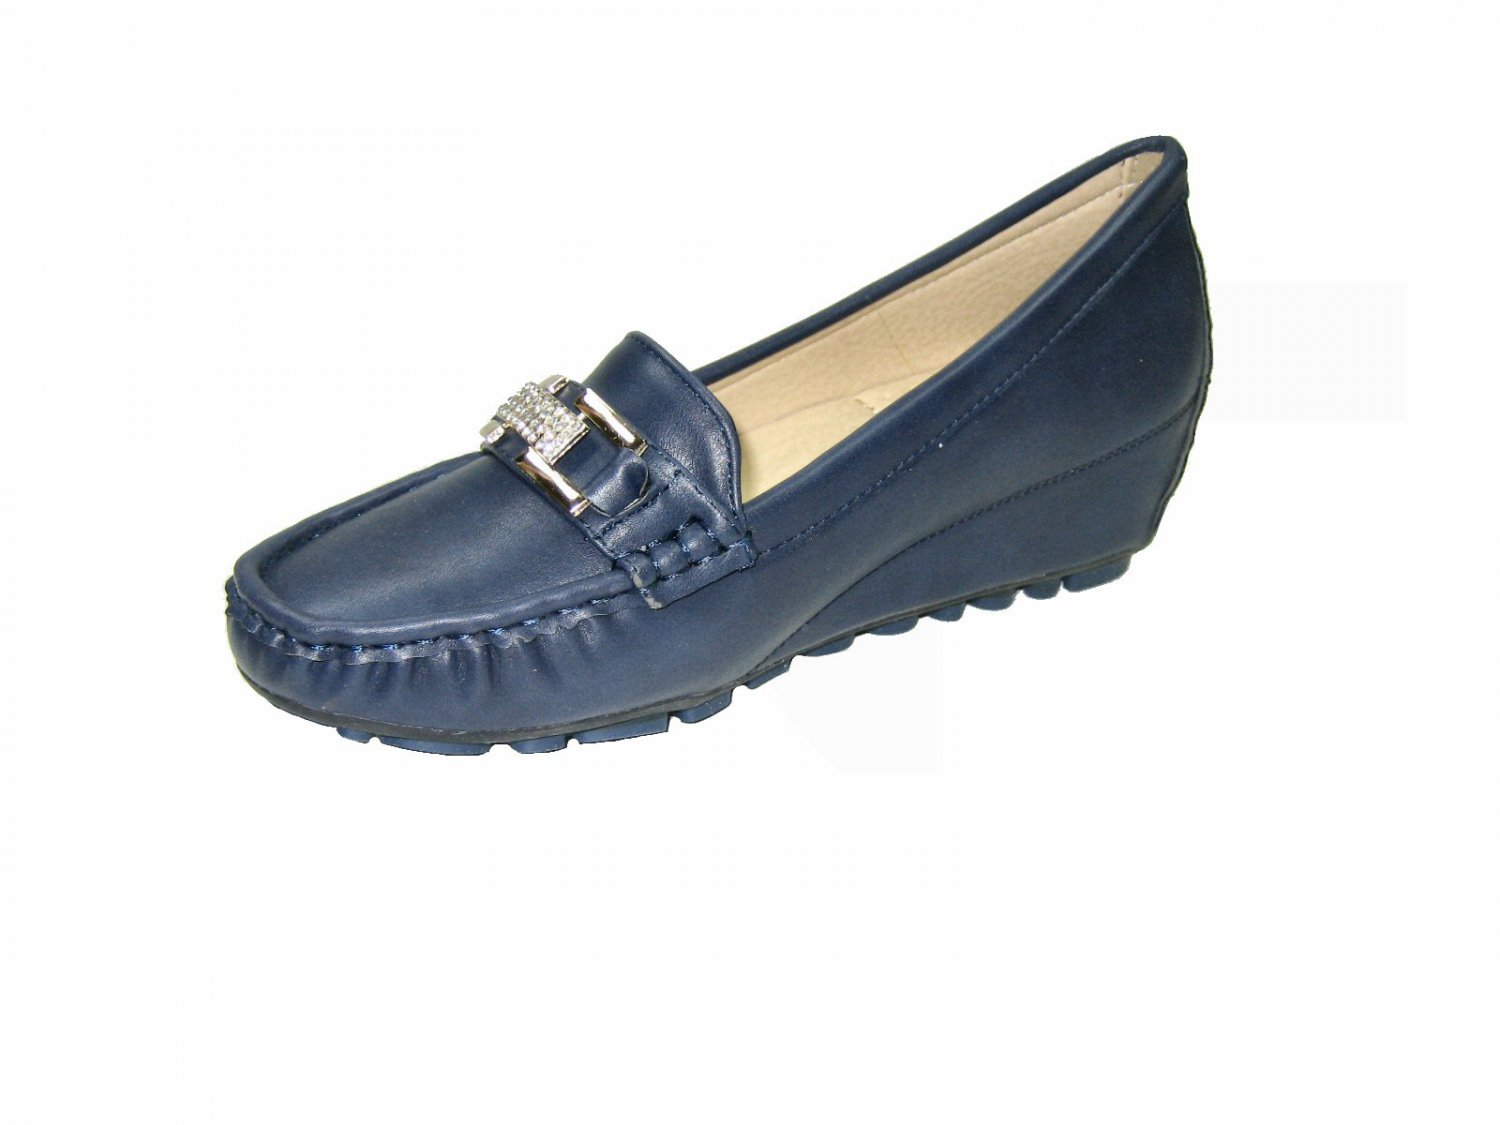 Nature Breeze SouthBay-2p 2 inch wedge heel comfort loafer rhinestone pumps shoe navy size 7